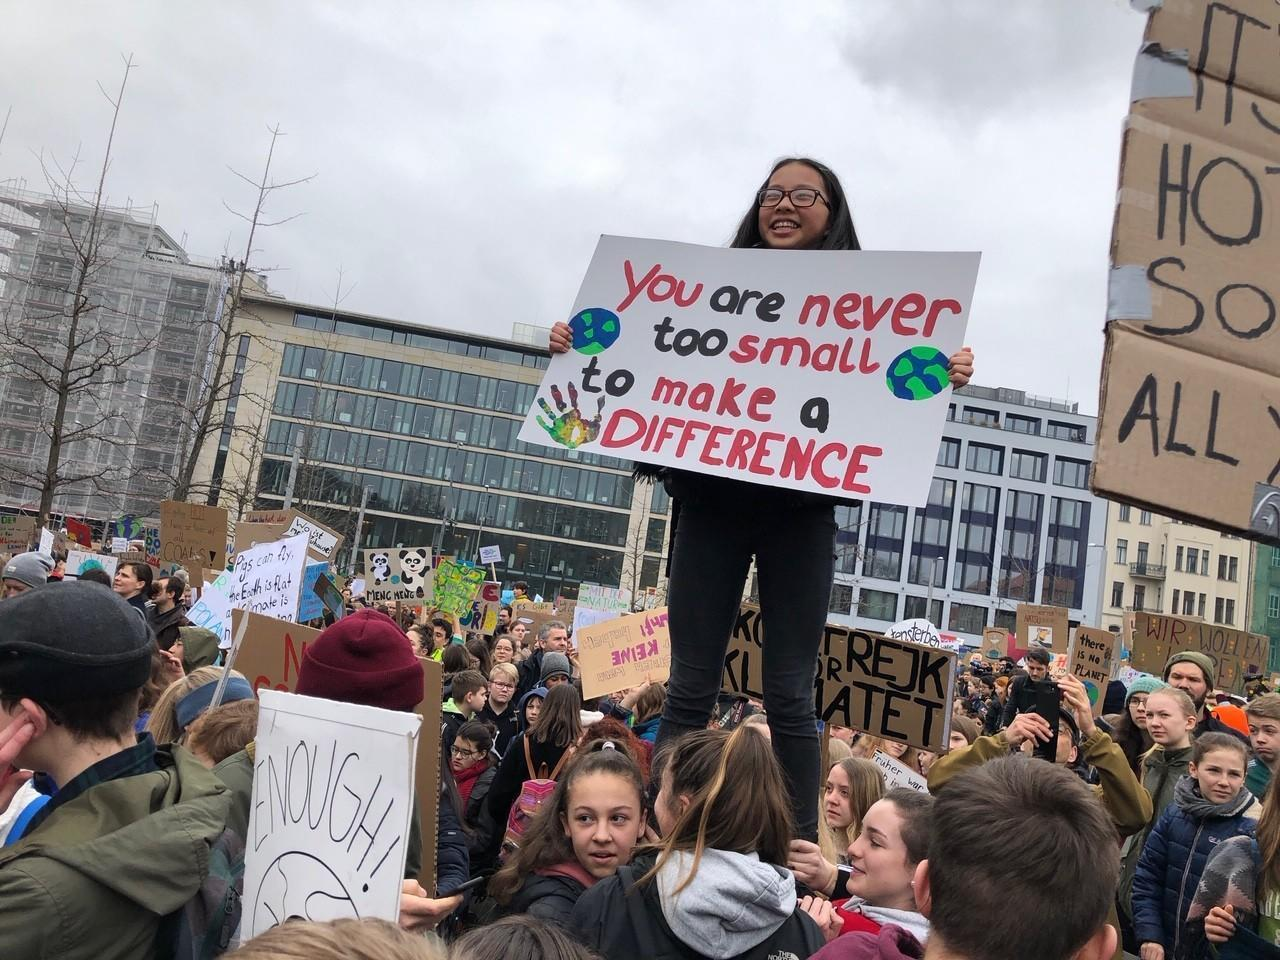 German students again march over climate change: 'The older generations have failed'